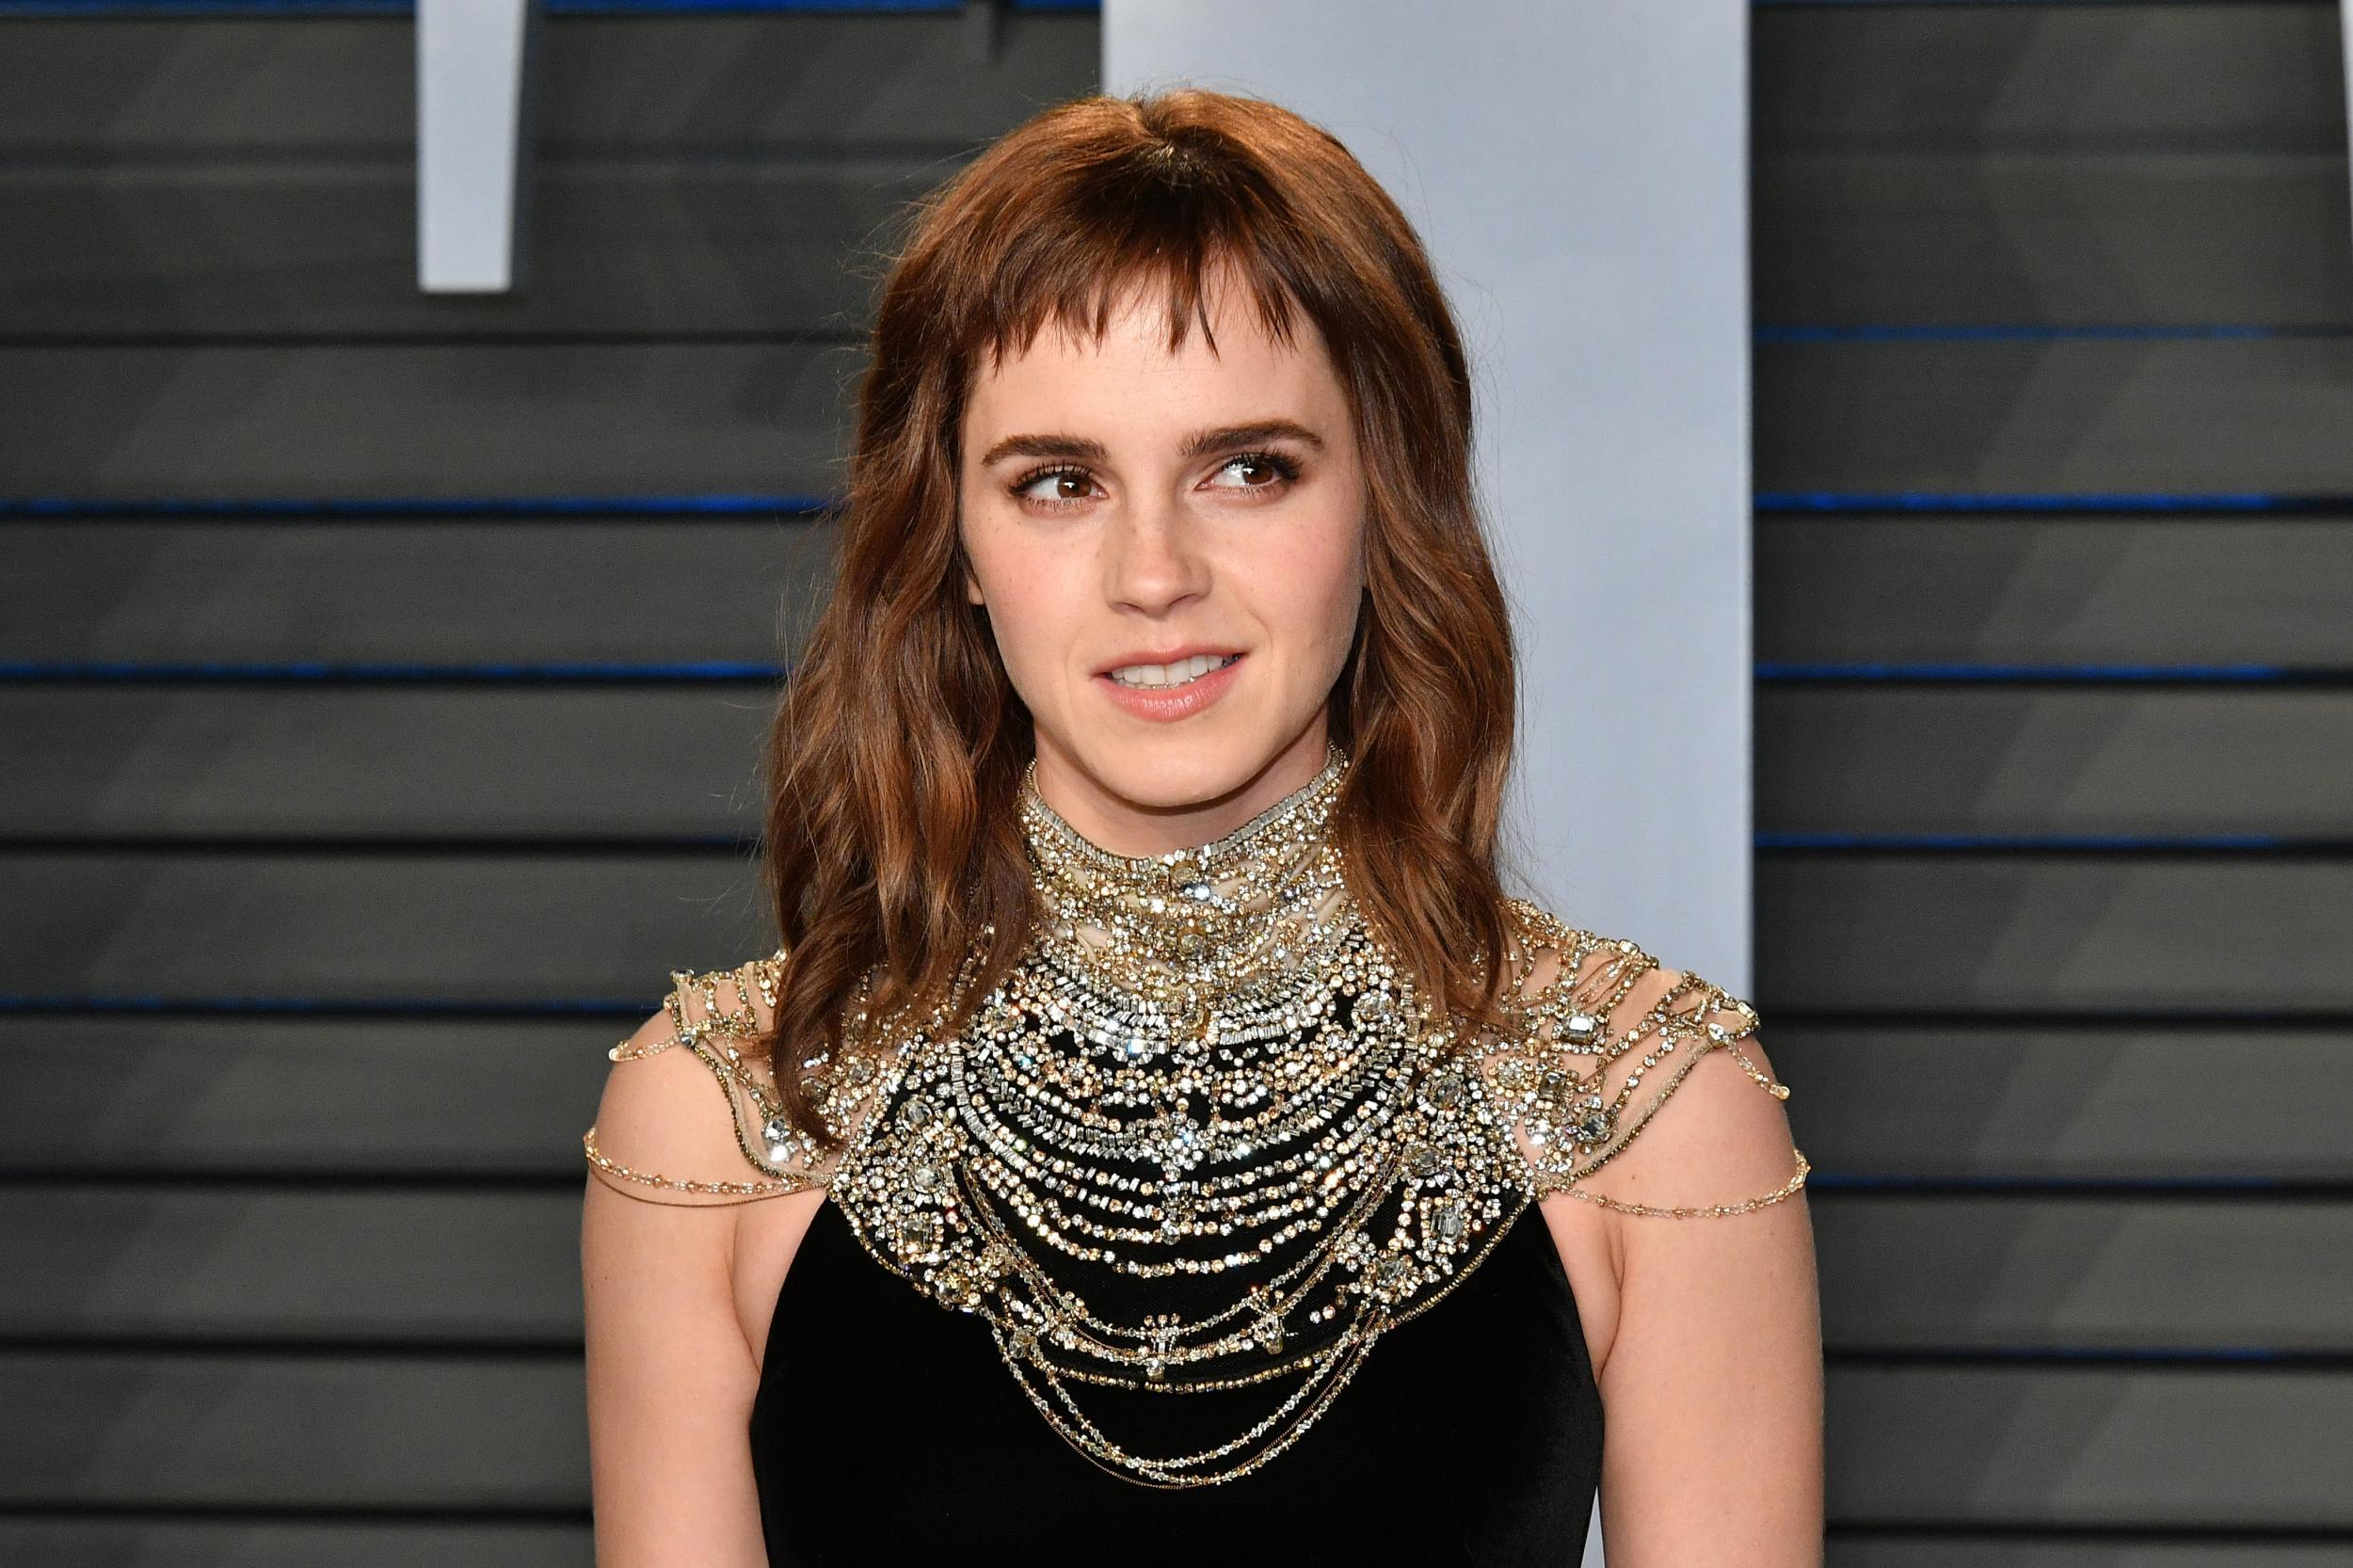 emma watson's 'time's up tattoo' has an obvious typo | the independent